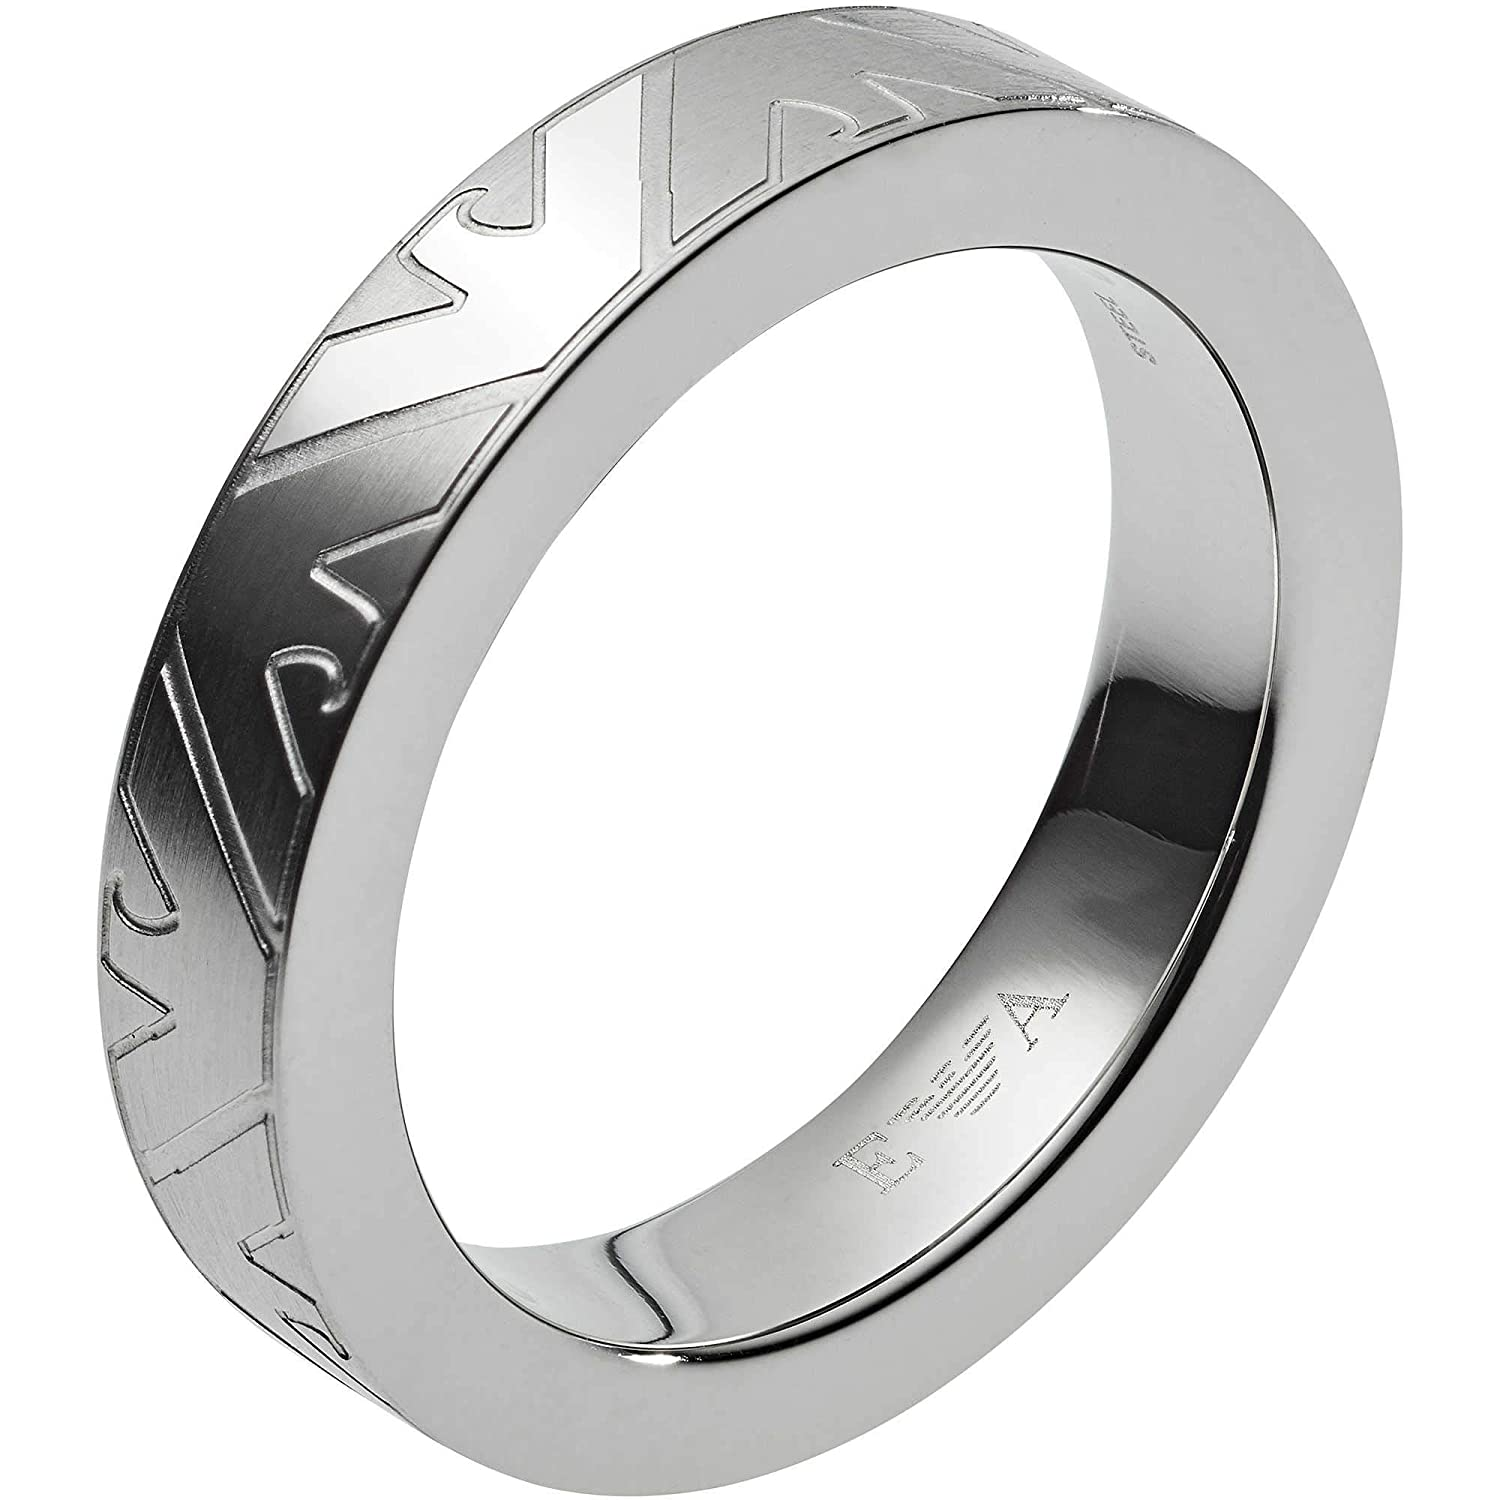 e056c7af82 Emporio Armani Men's Ring Stainless Steel Bi-Colour 63 two-tone ...